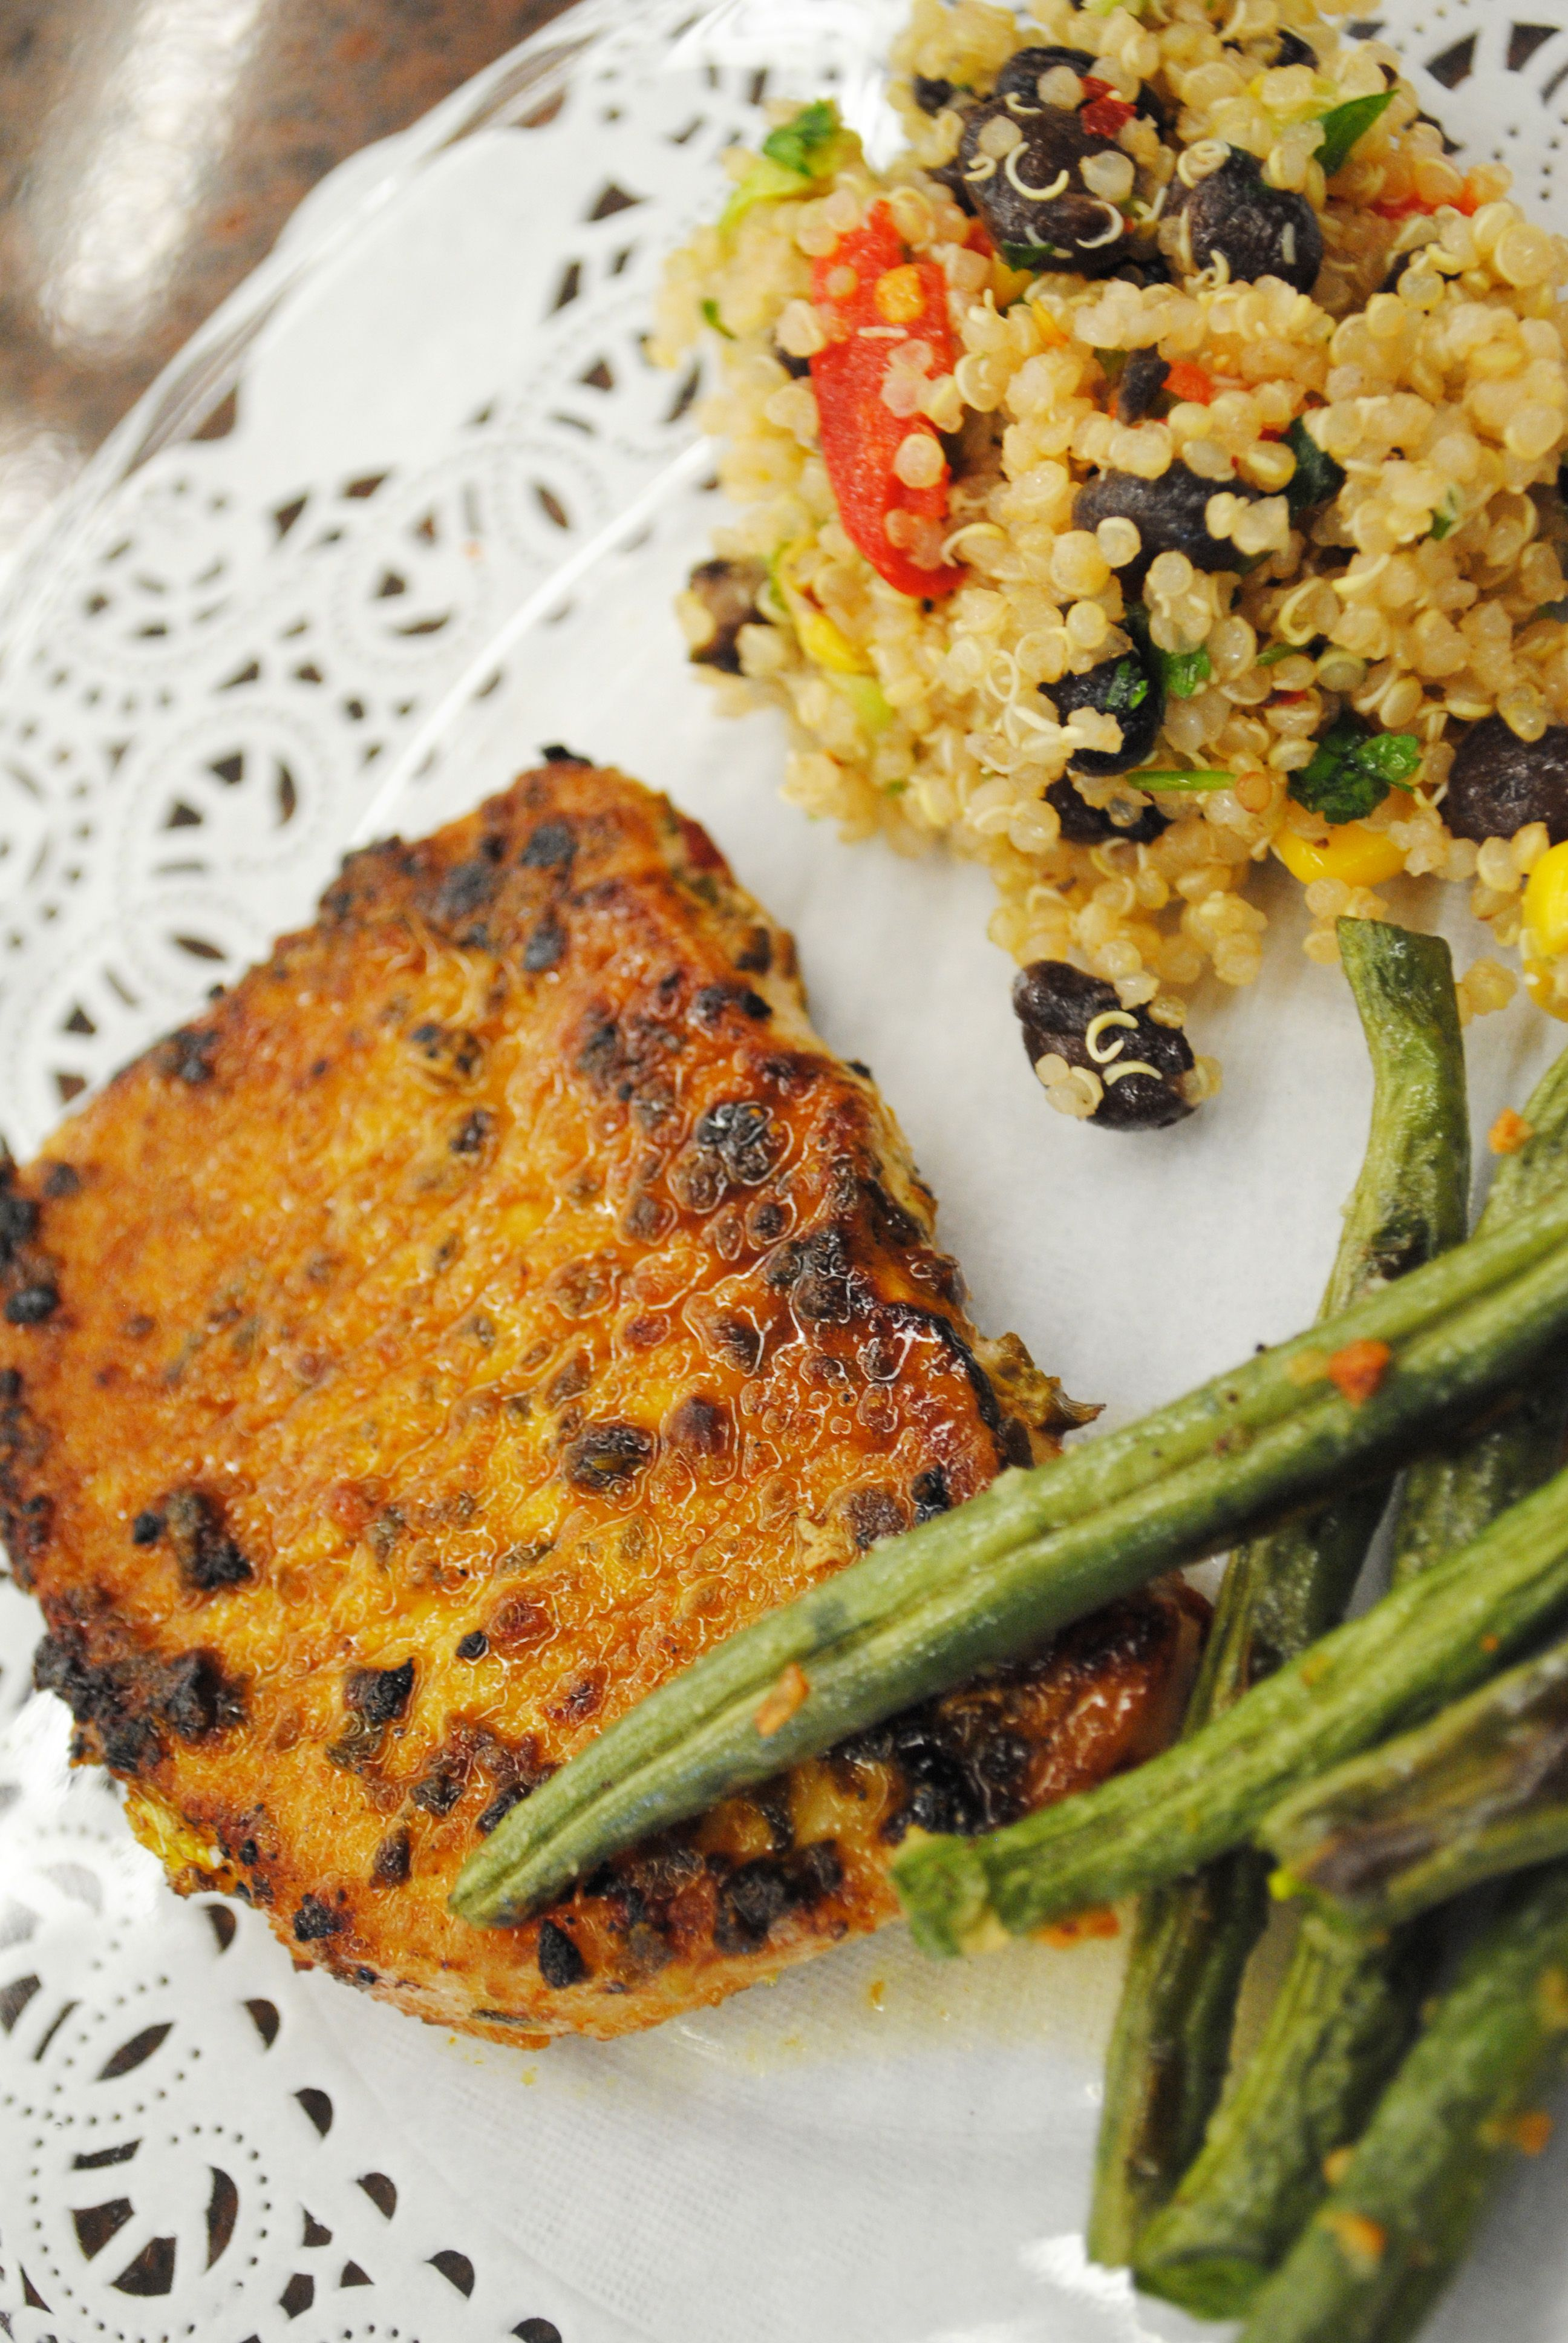 Haitian Pork Chops and Garlic Green Beans (With images